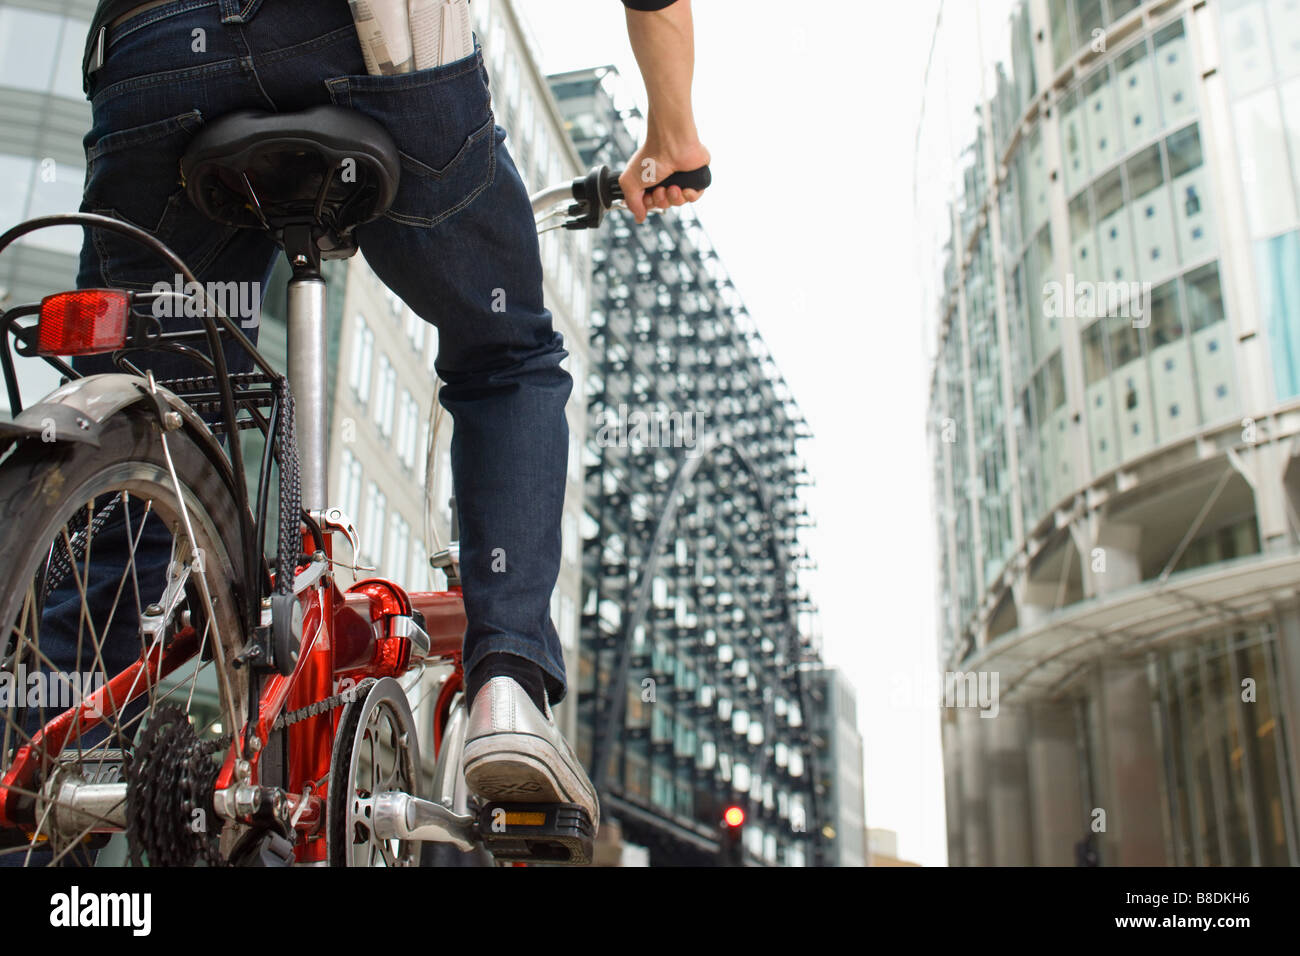 Cyclist in city - Stock Image